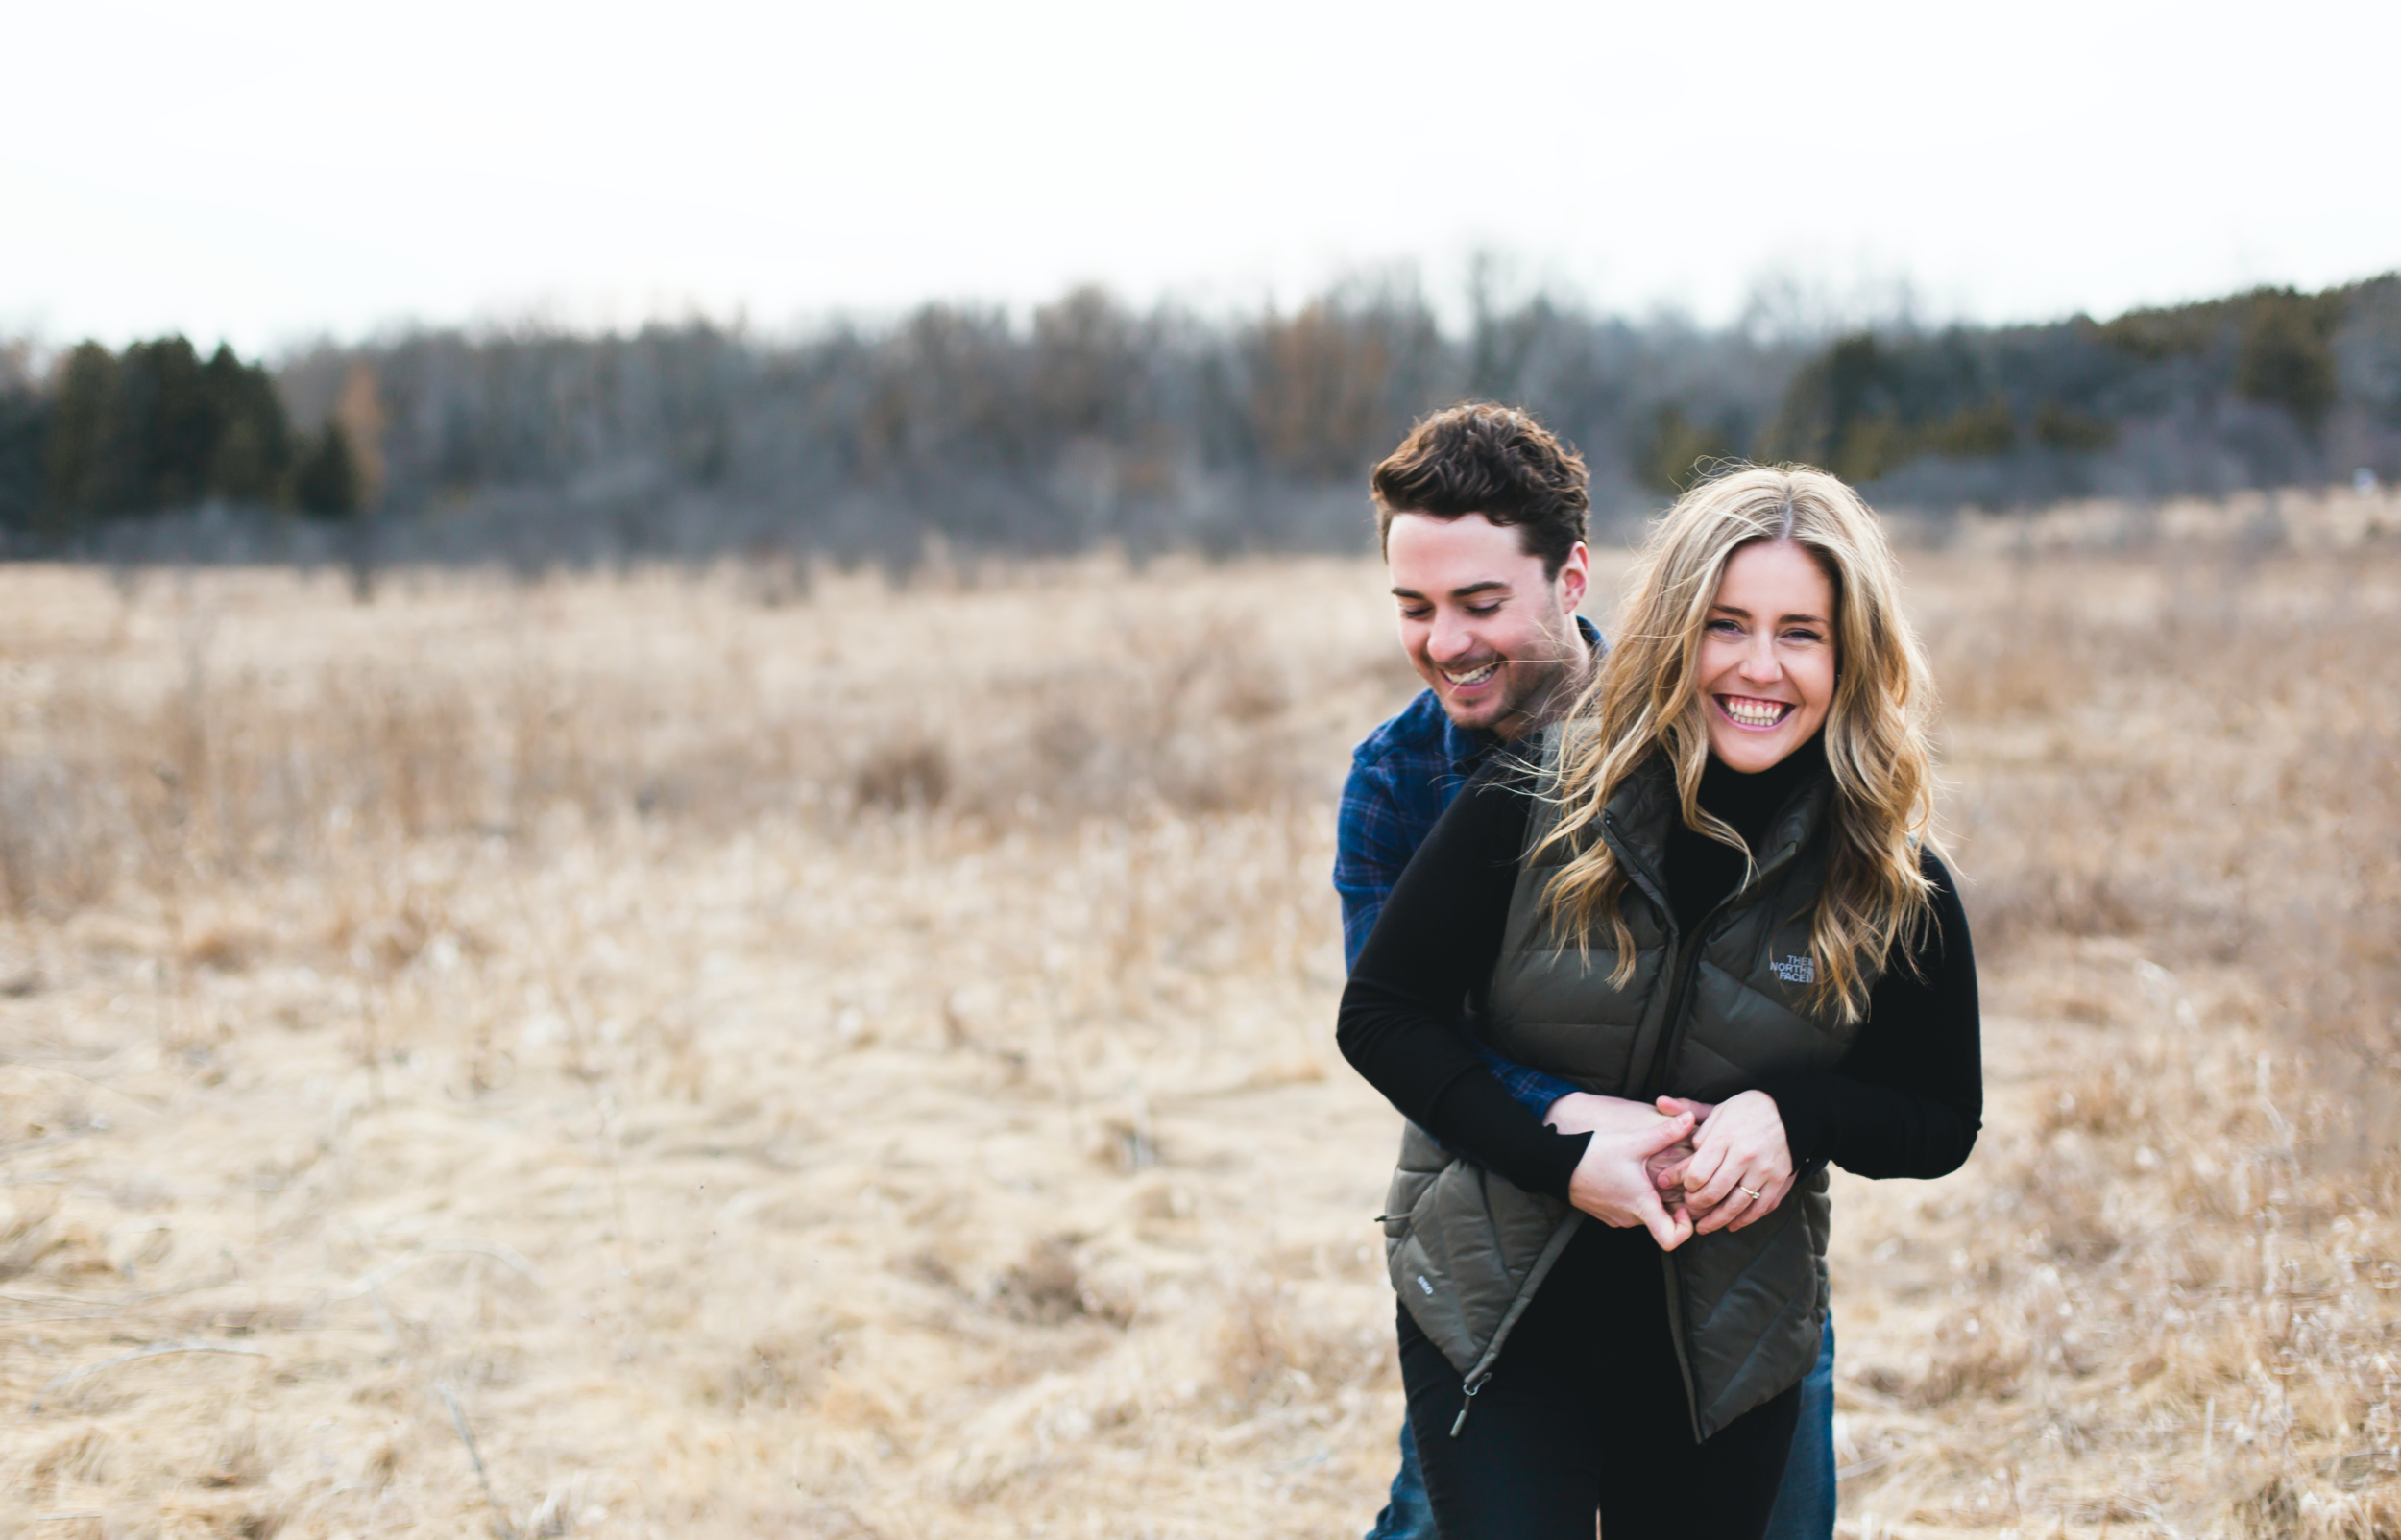 Engagement-Session-Photographer-Guelph-Lake-Hamilton-Toronto-Niagara-Photography-Moments-by-Lauren-Photo-Image-4.png